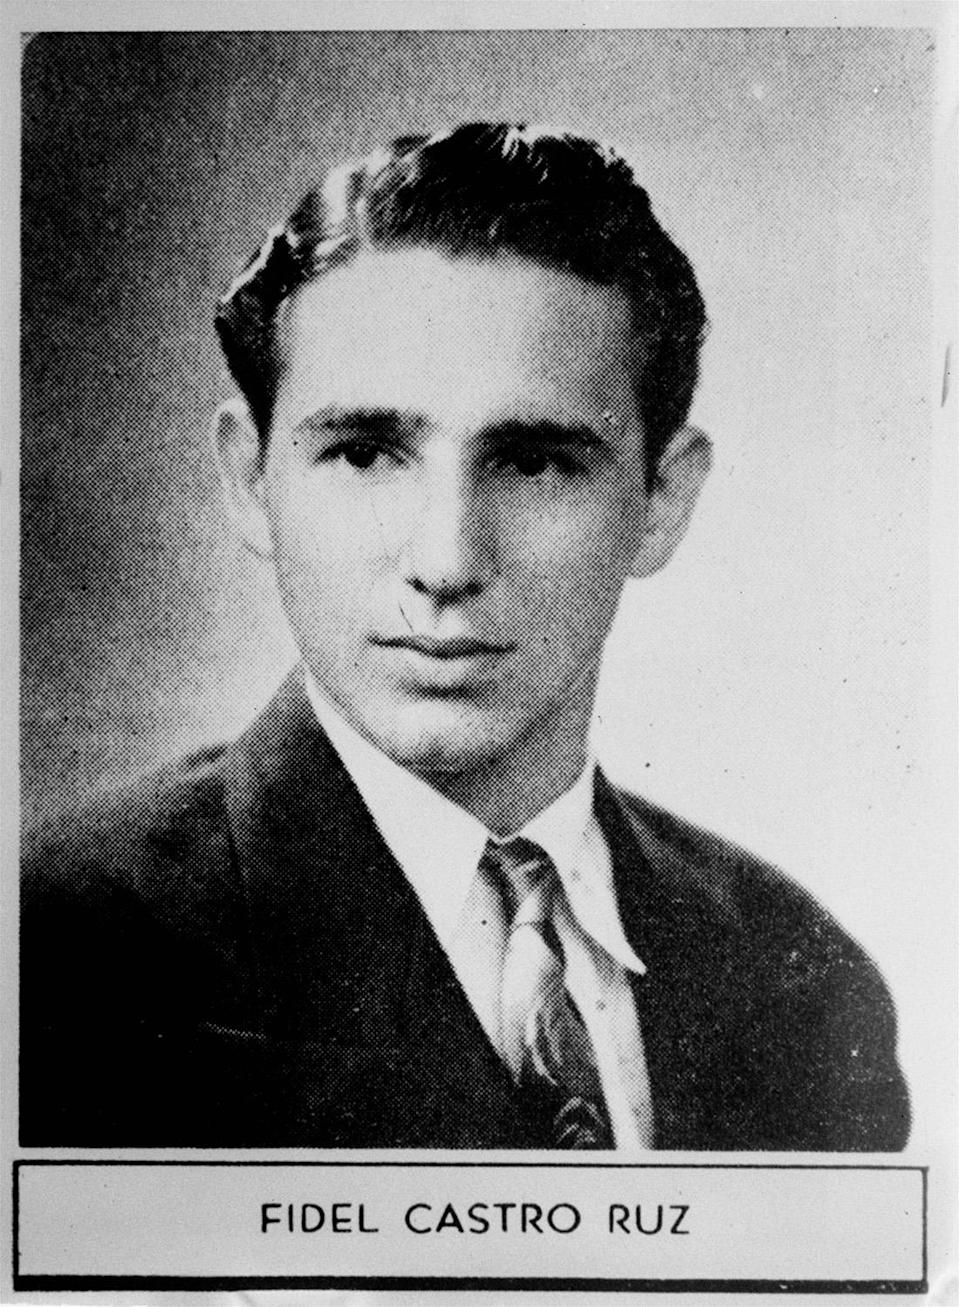 """<p>The caption describing Fidel Castro in his 1945 high school yearbook reads: """"Distinguished student and a fine athlete. Very popular. Will study law and we have no doubt he will have a brilliant future."""" (AP Photo) </p>"""